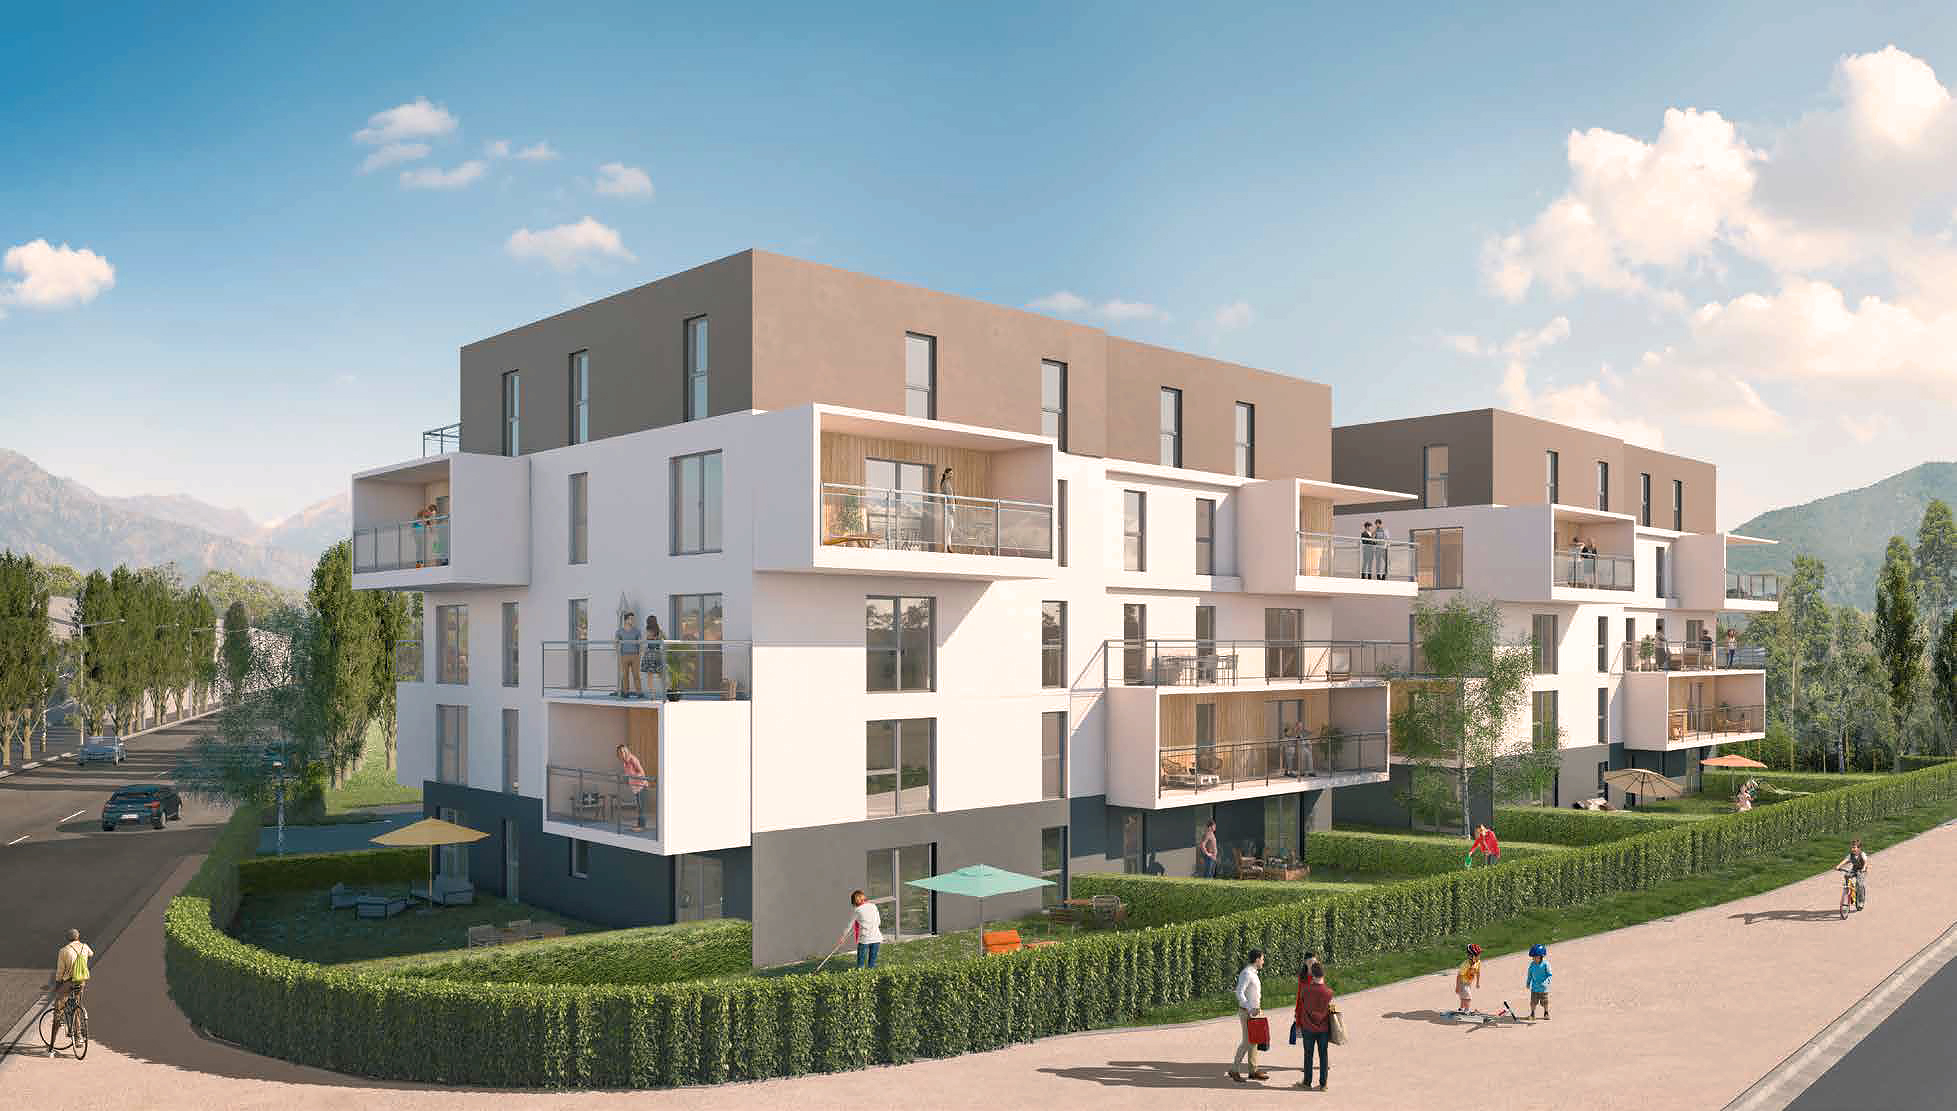 Programme immobilier CO11 appartement à Cluses (74300) Proche Centre Ville